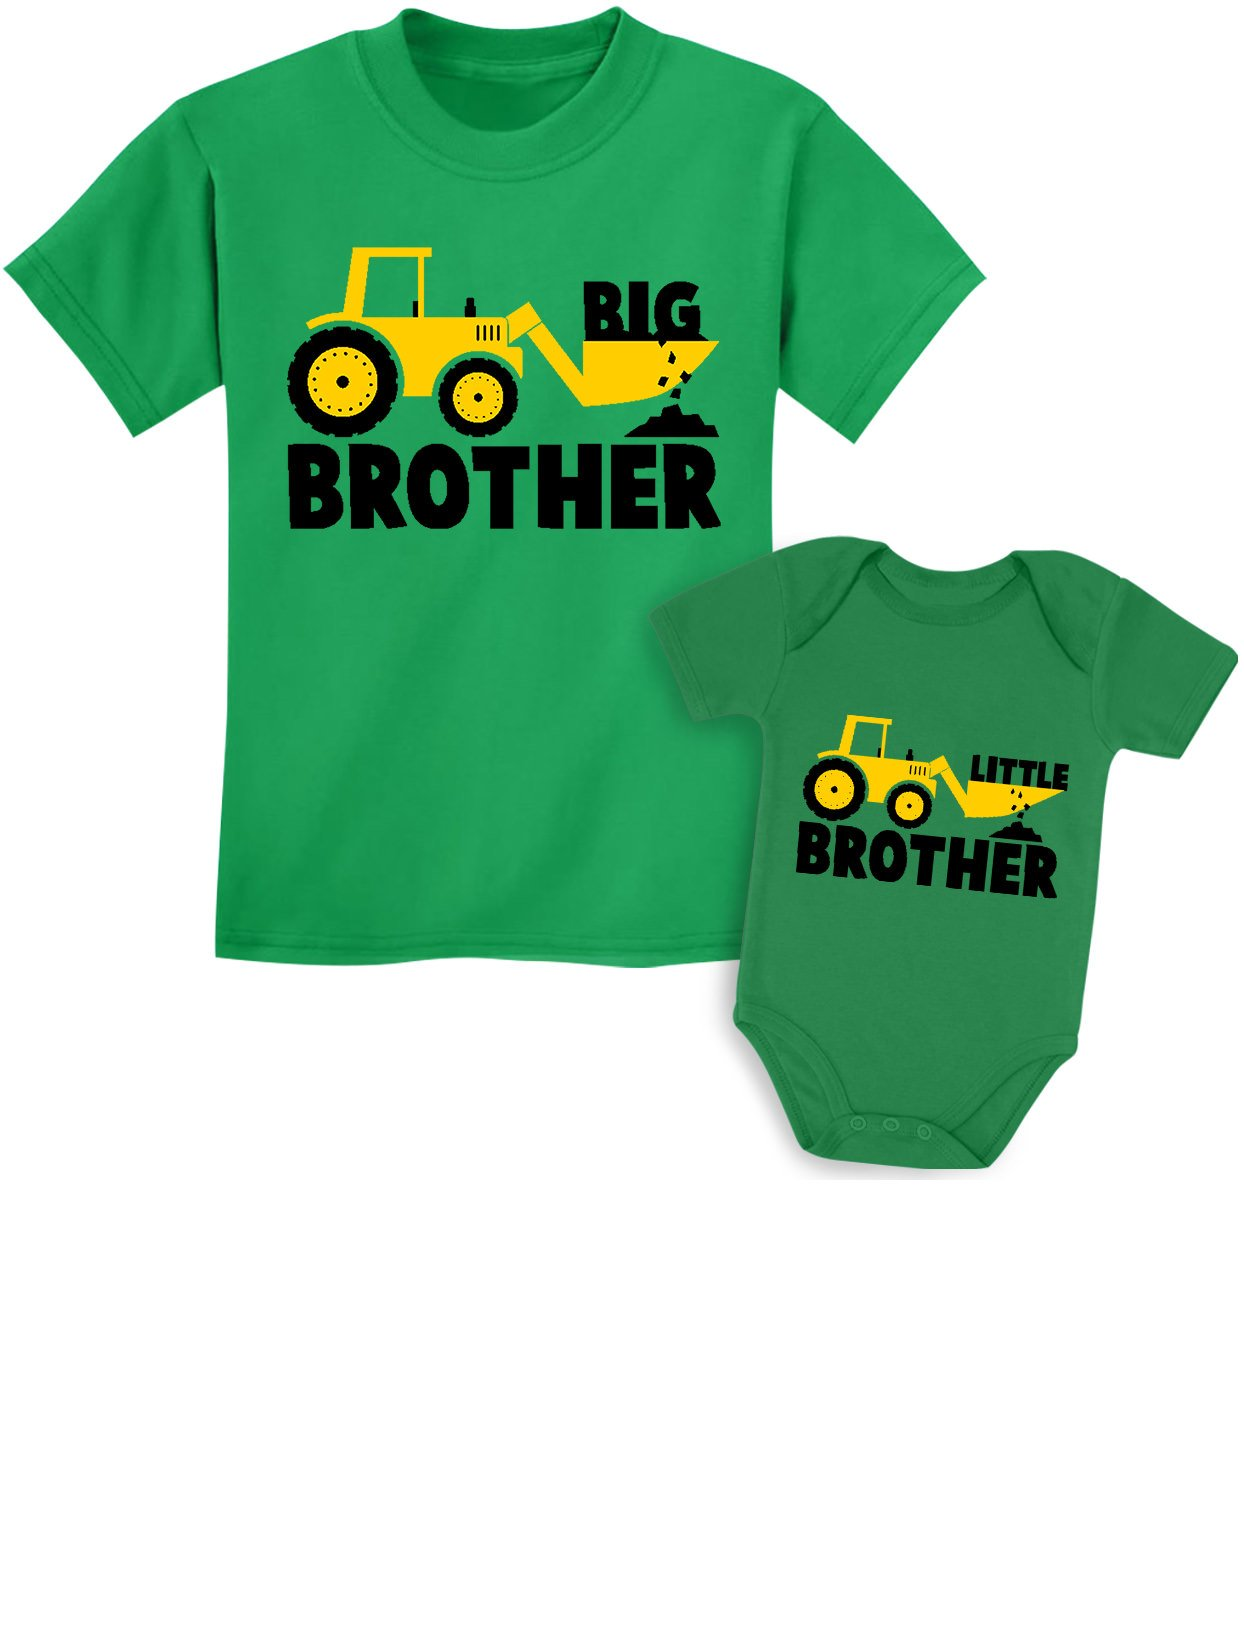 Tstars Big Brother Little Brother Shirts Gift for Tractor Loving Boys Siblings Set Baby Green/Kids Green Baby Newborn/Kids 2T